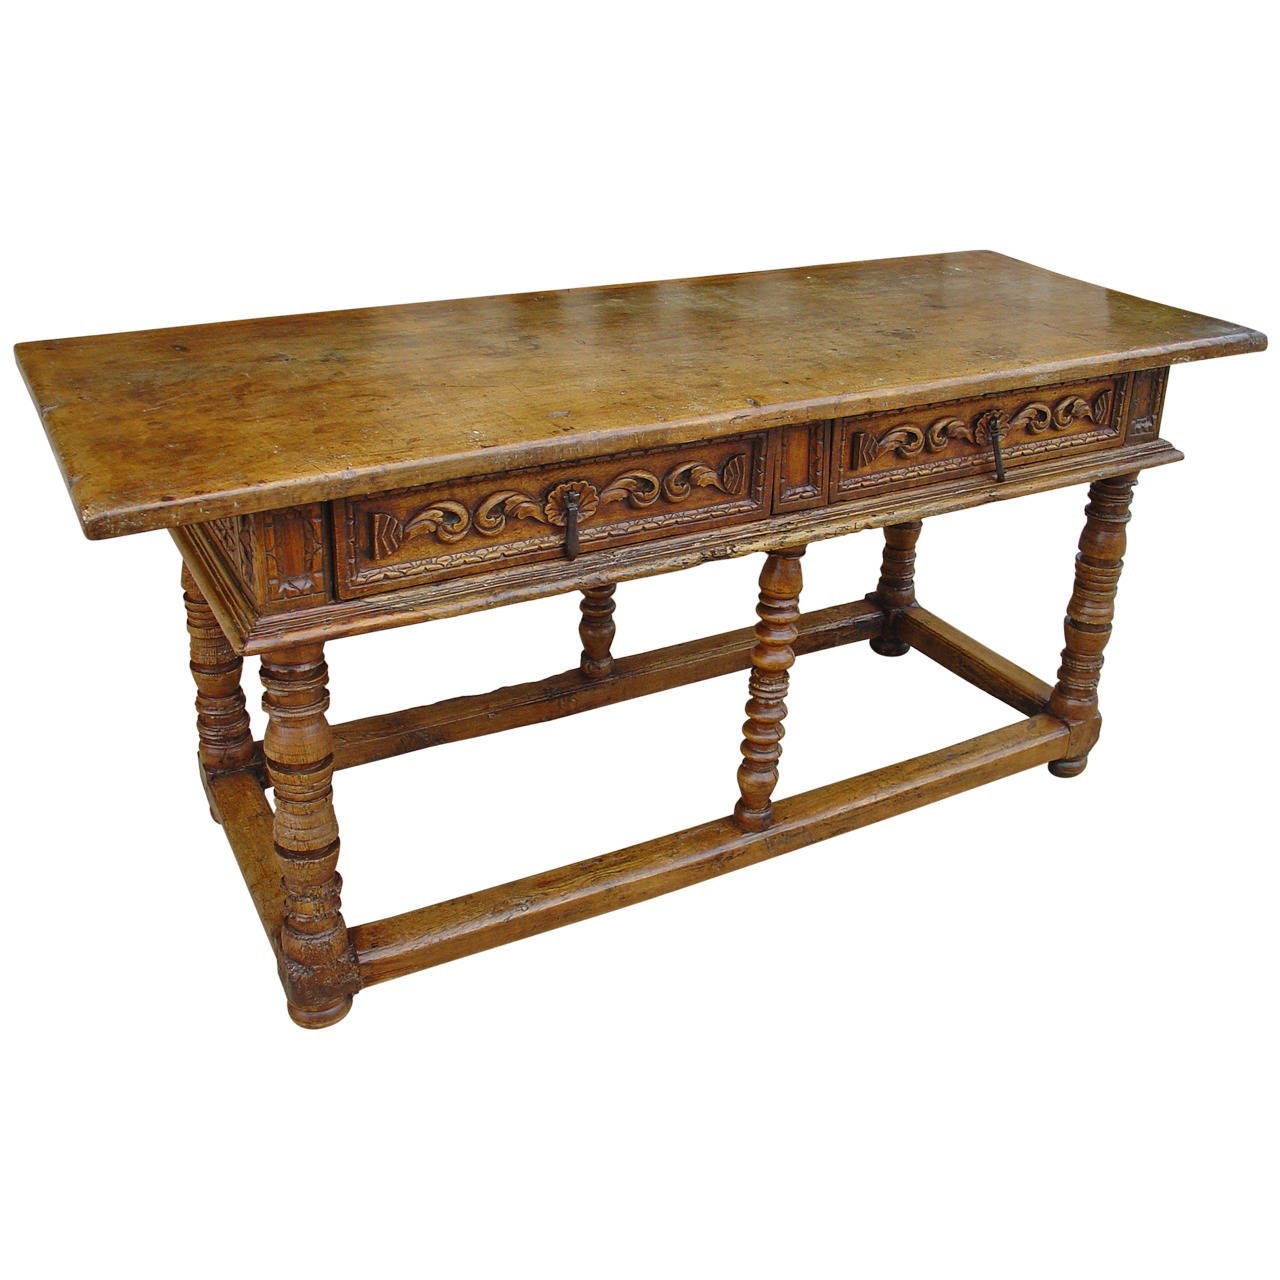 Antique spanish walnut wood table from the 1600 s at 1stdibs for Table furniture